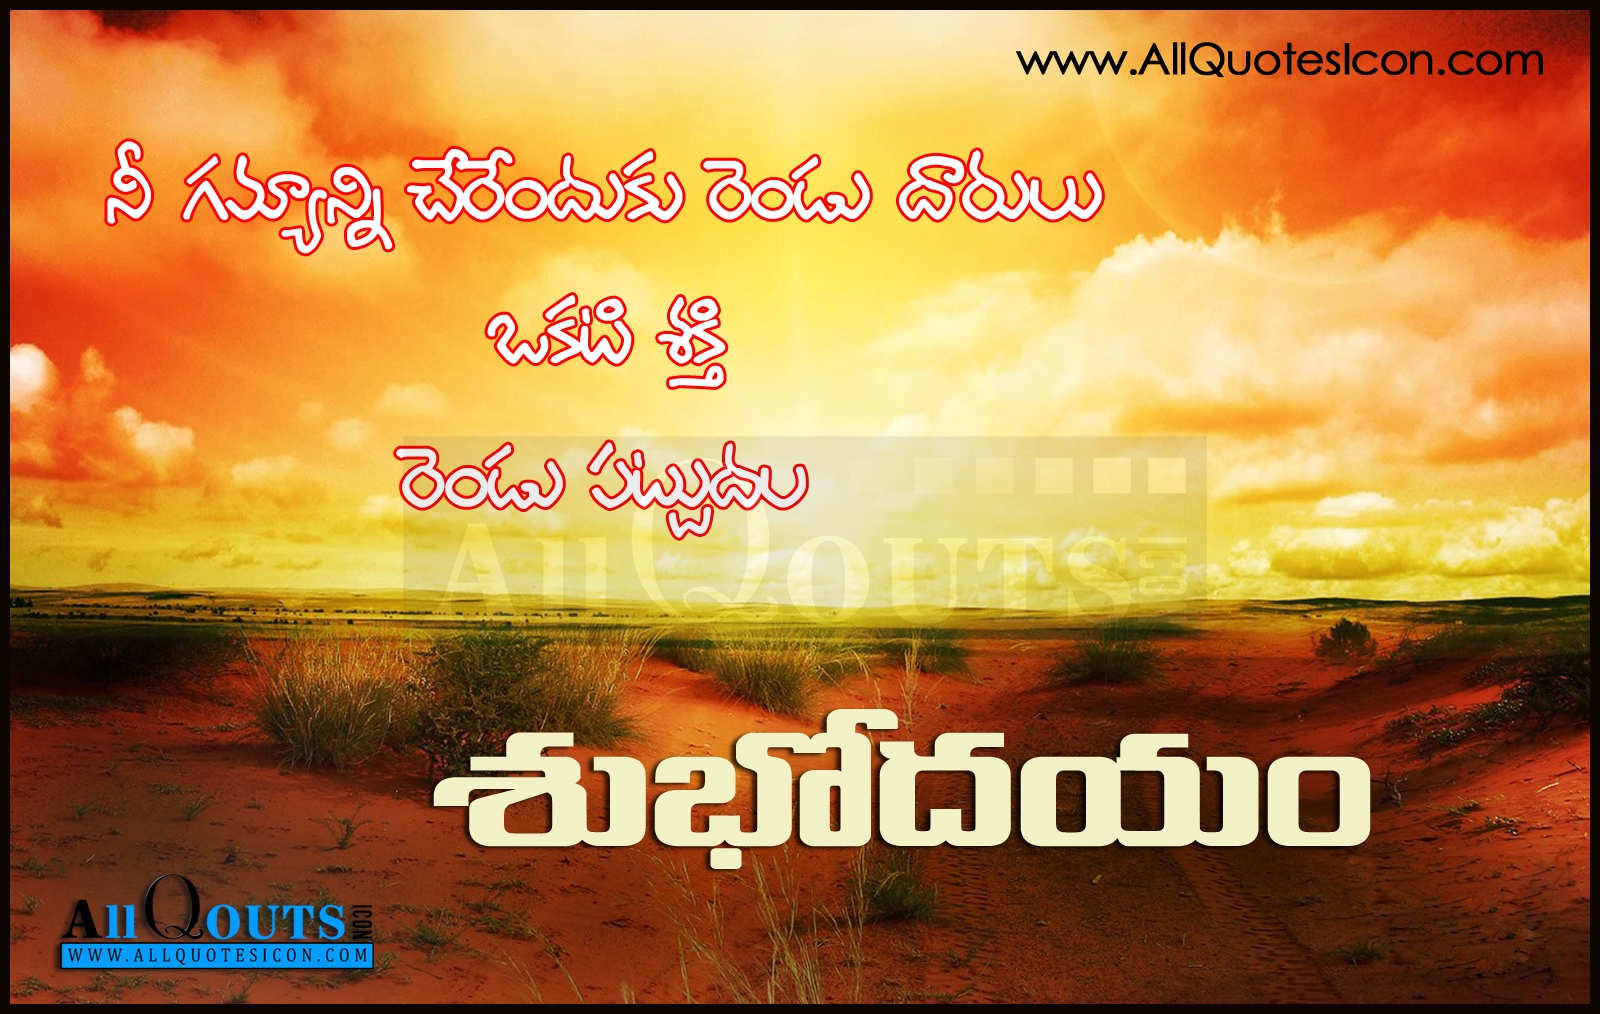 Inspirational Quotes About Friendship Best Inspirational Good Morning Greetings Quotes In Telugu Hd